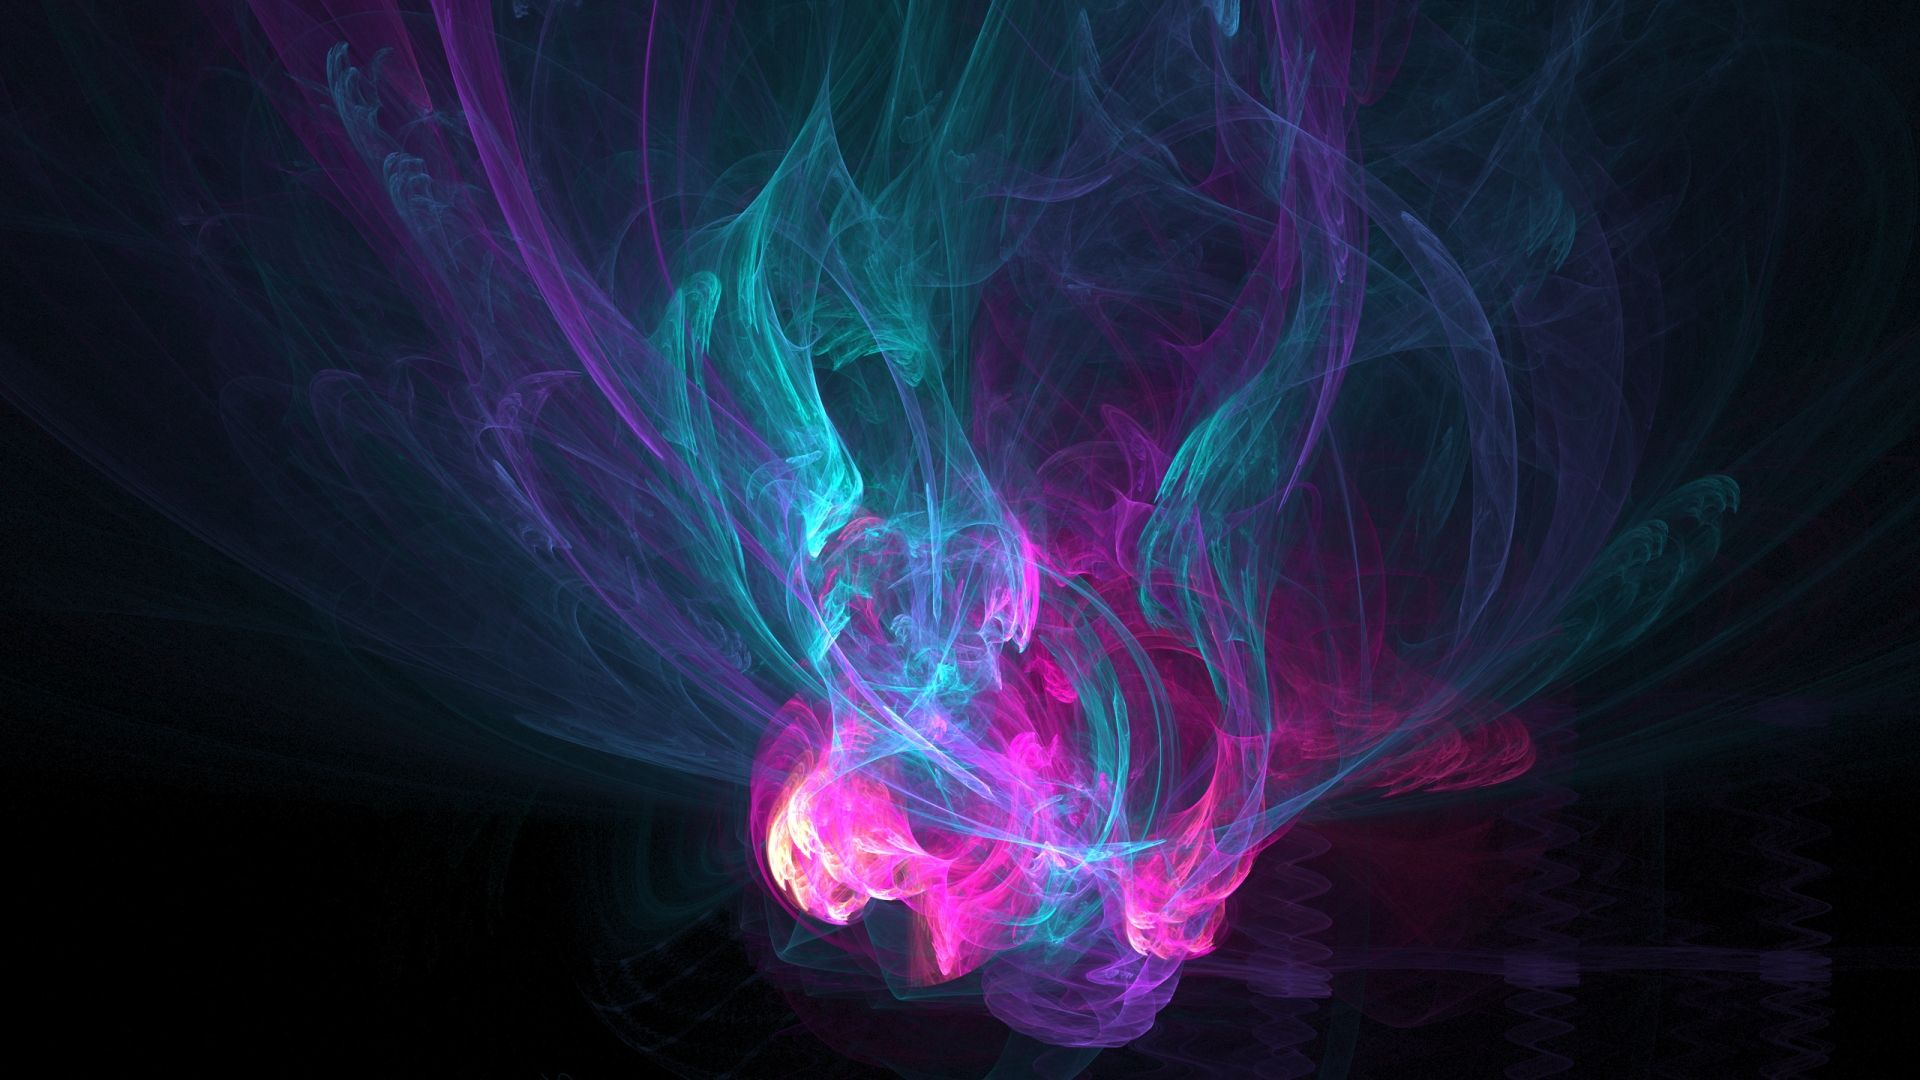 Abstract Fractal Smoke In Pink Turquoise Purple Wallpaper Smoke